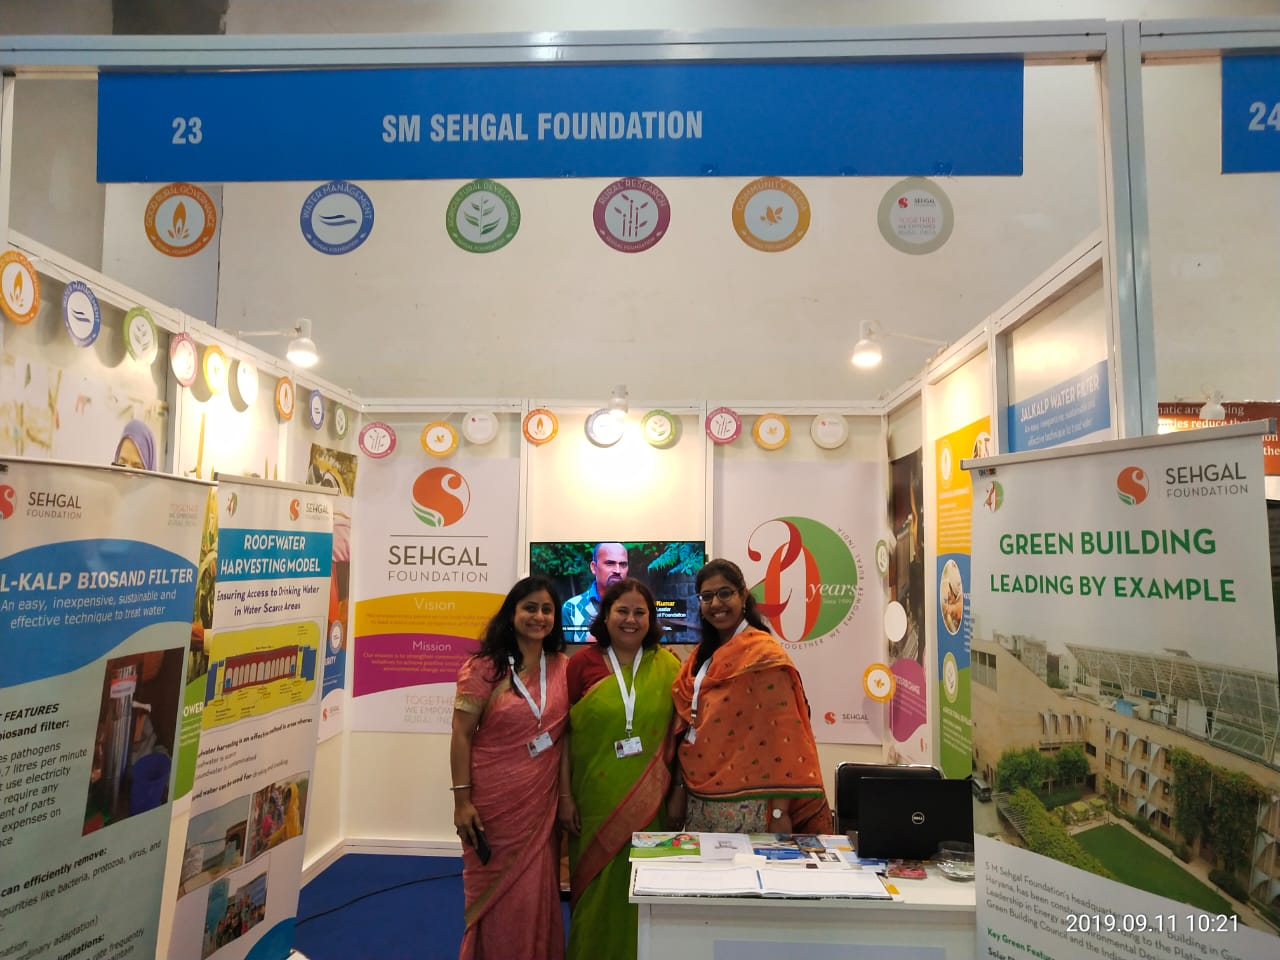 https://campaign-image.com/zohocampaigns/194670000009231004_zc_v28_sehgal_foundation_stall_at_unccd.jpeg